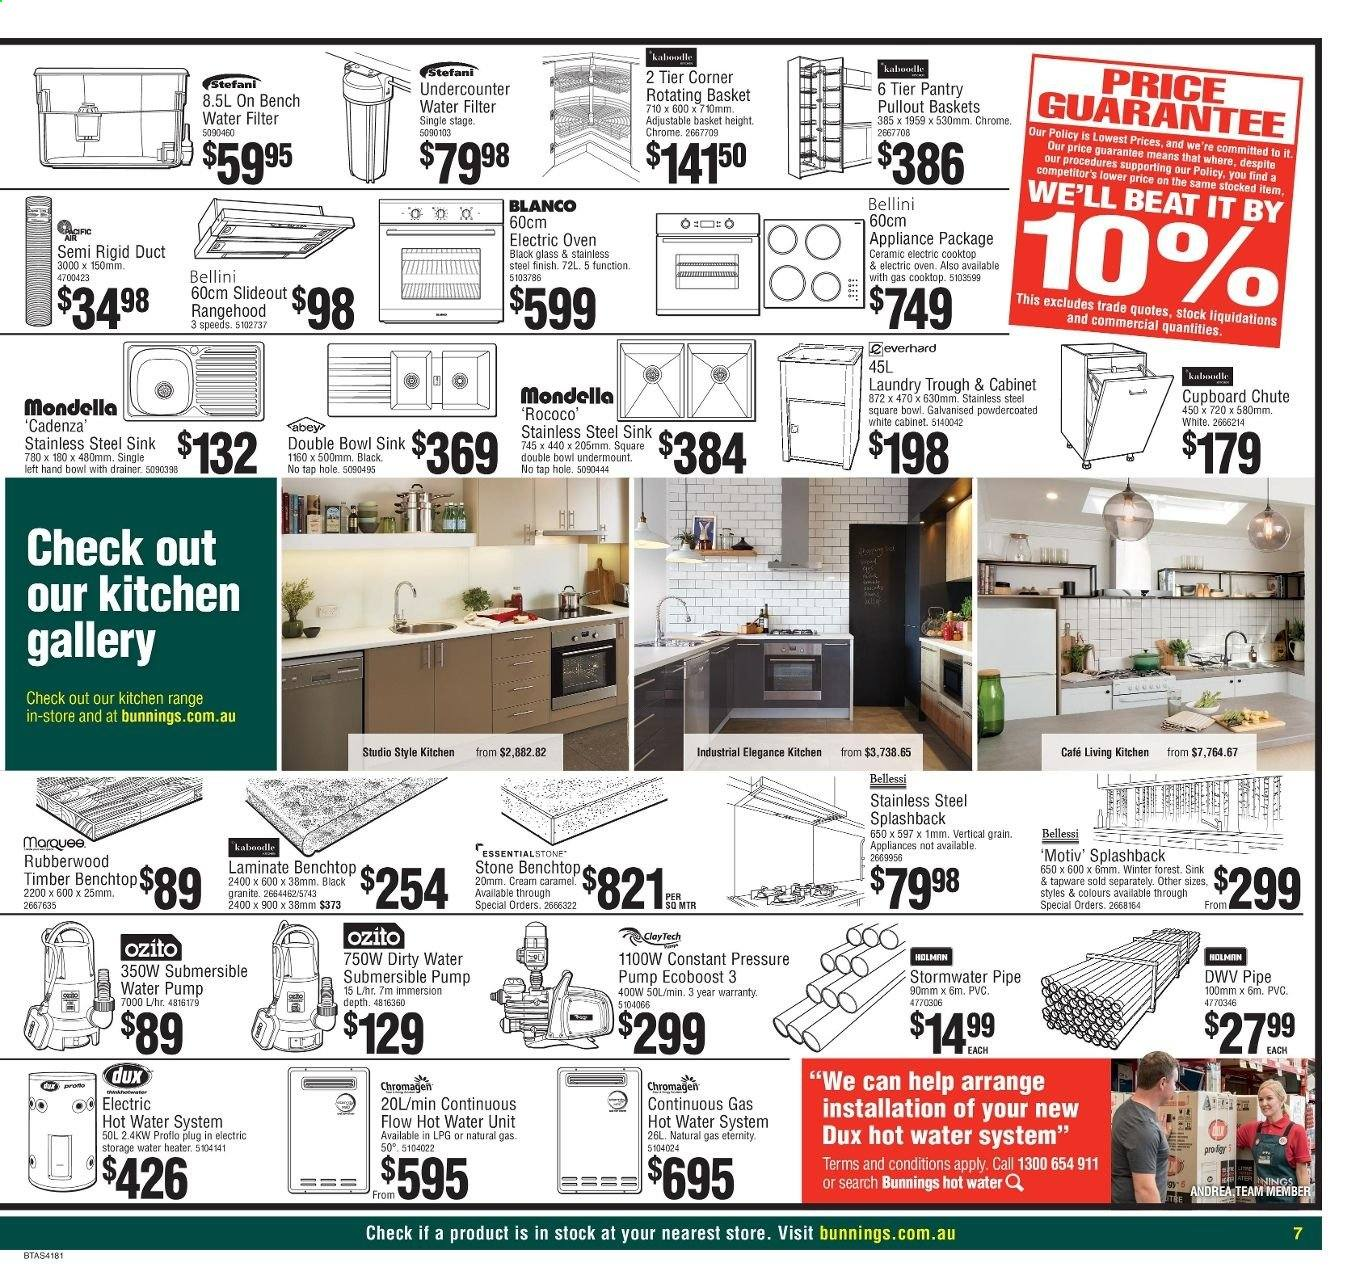 Bunnings Warehouse catalogue and weekly specials | Au